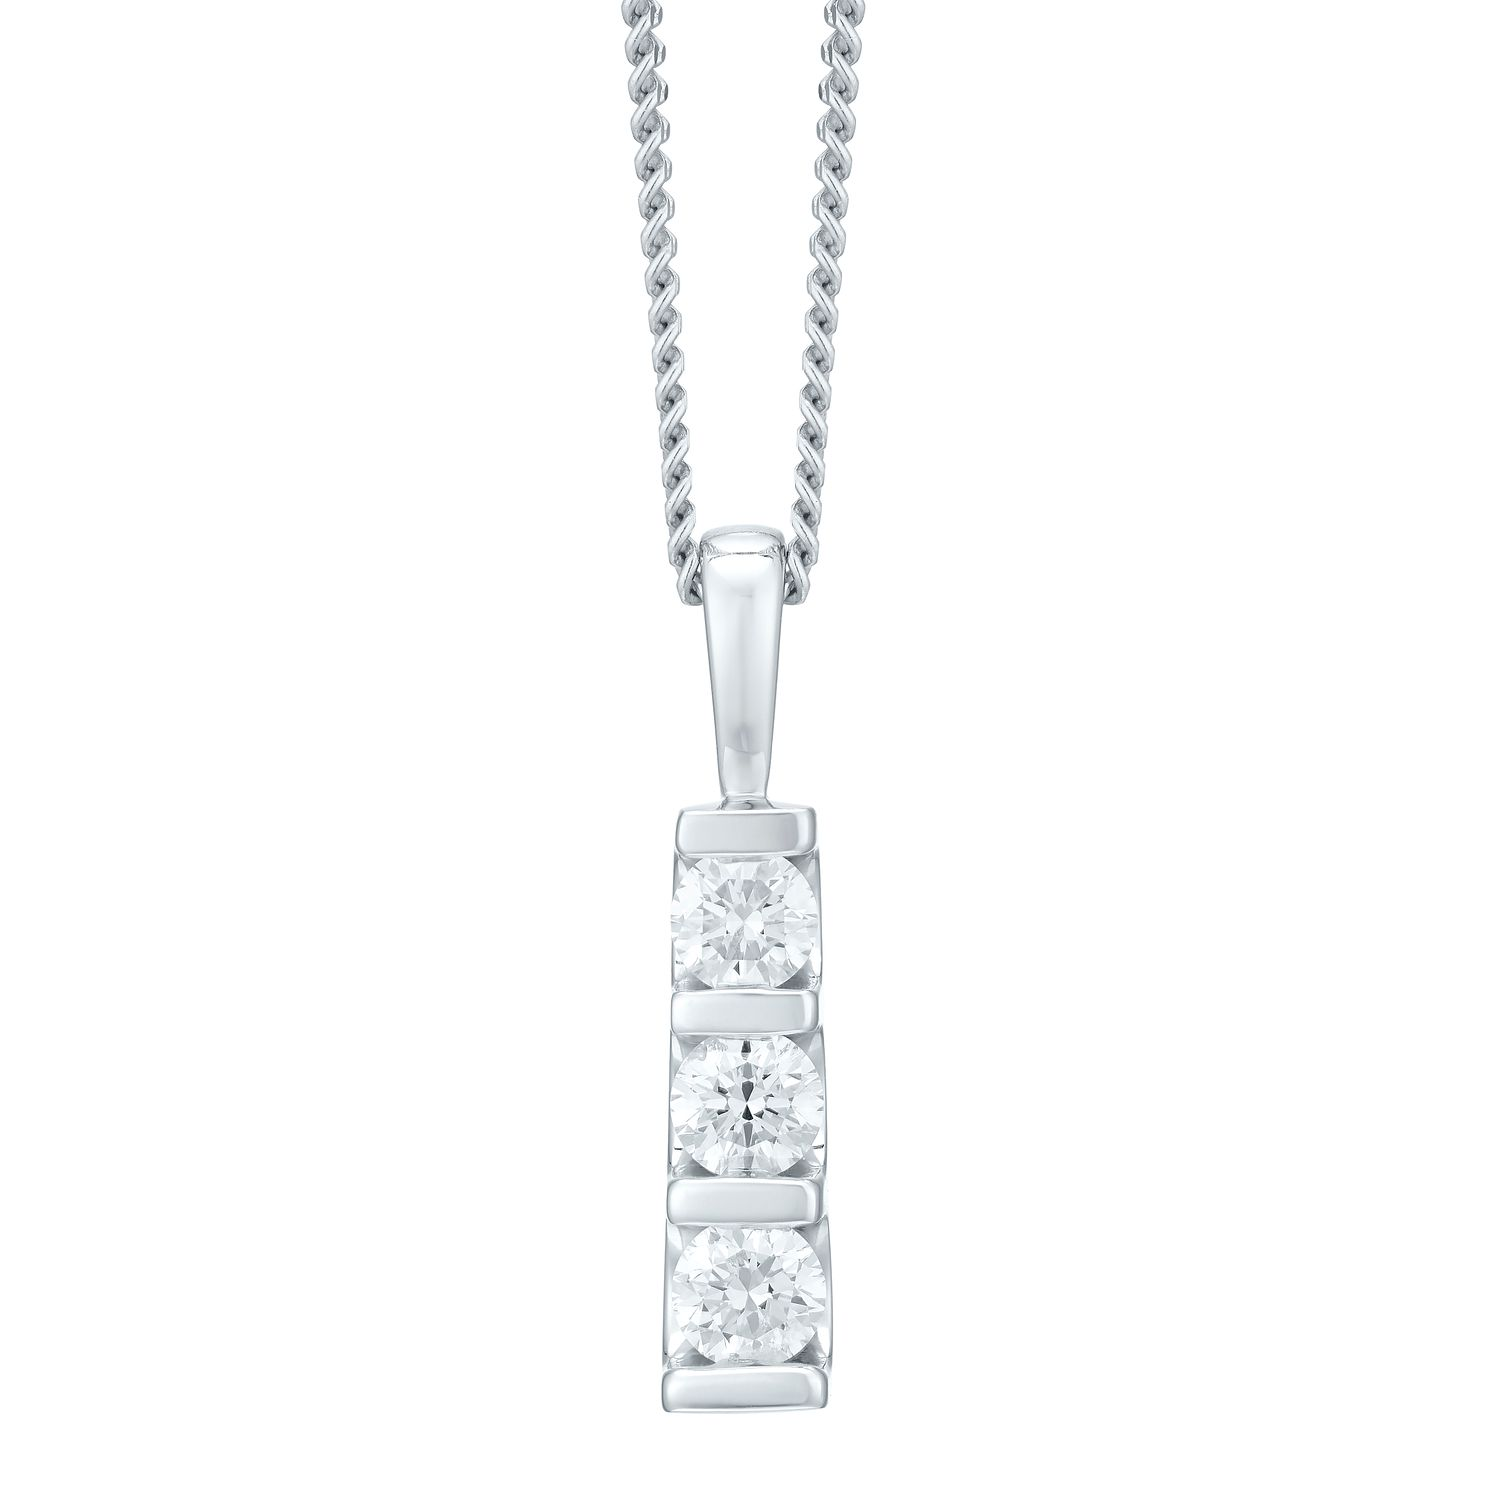 9ct White Gold Trilogy Diamond Pendant Necklace - Product number 4720032